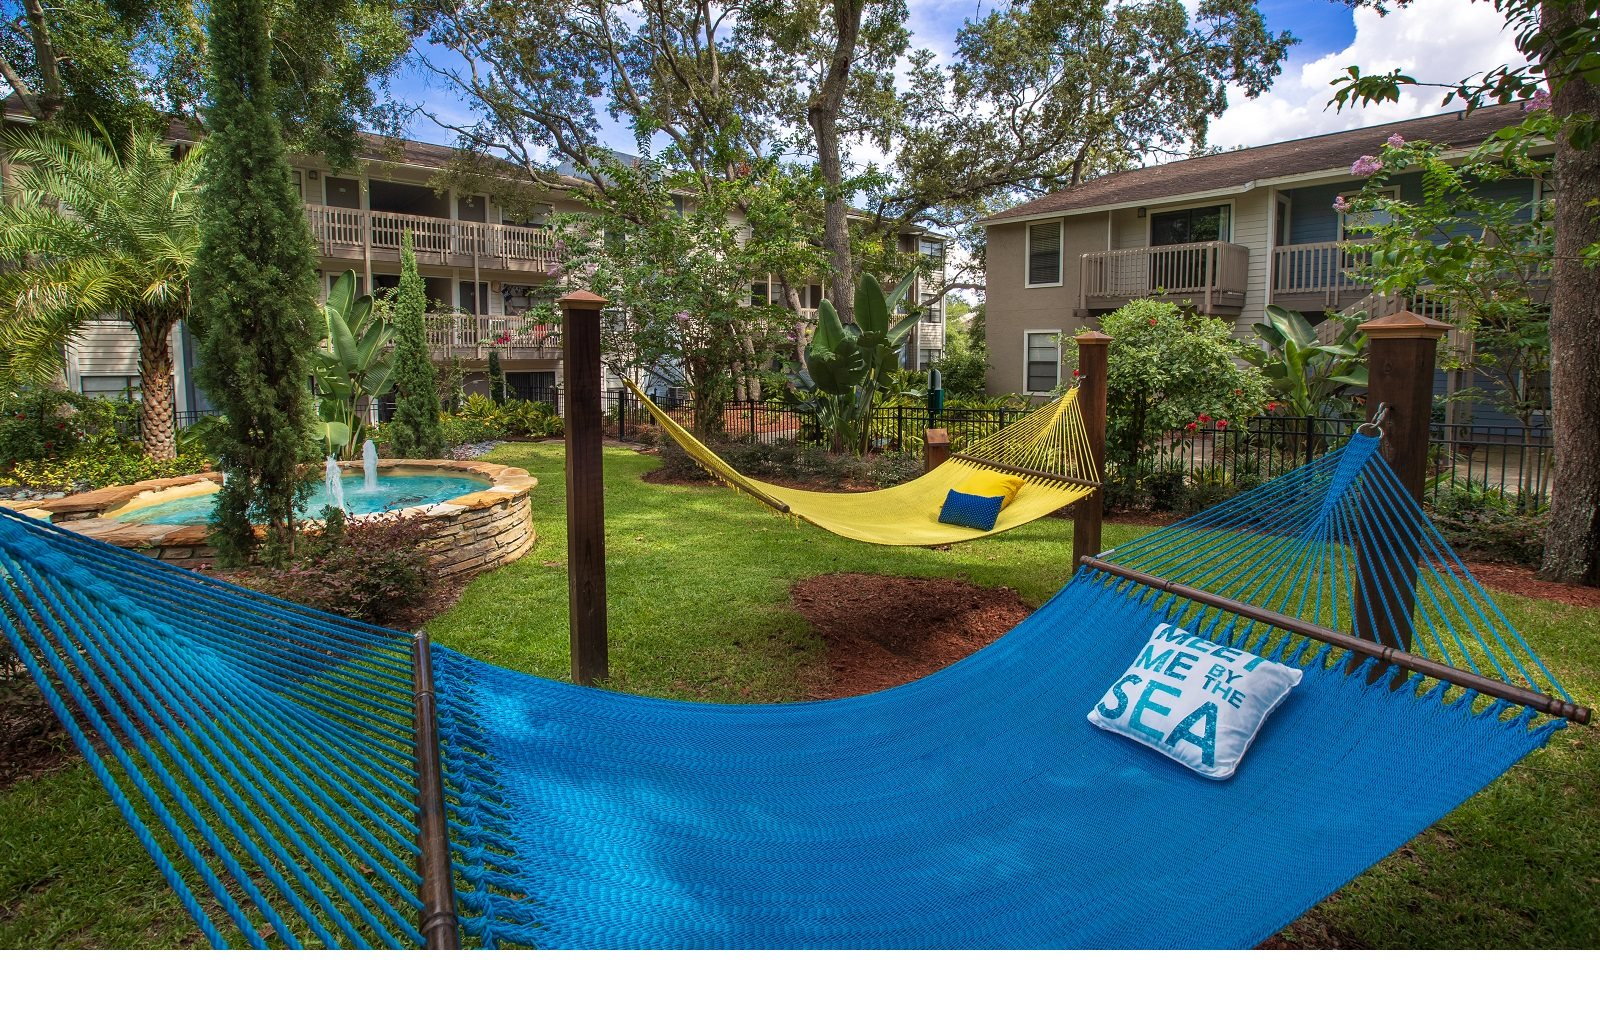 Stillwater Palms Apartment Rentals in Palm Harbor, FL